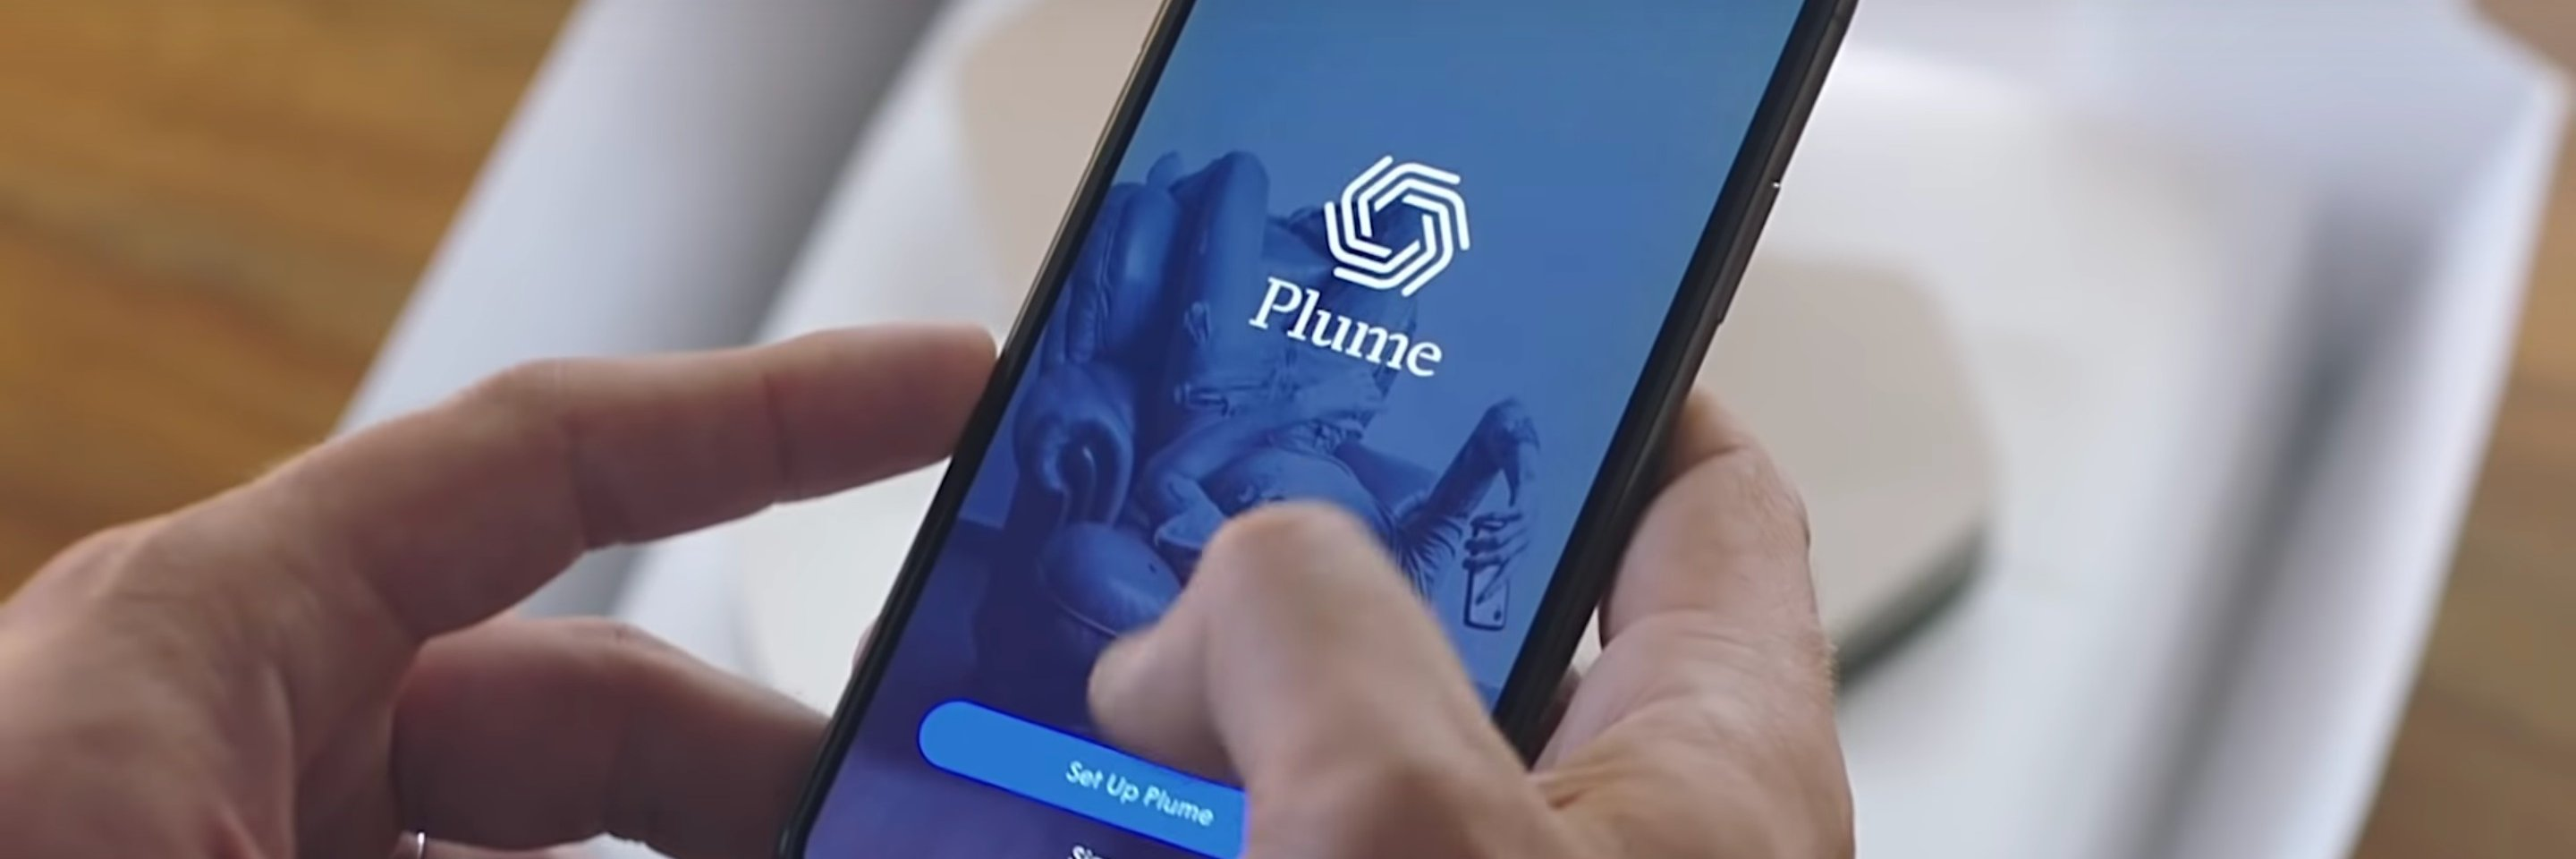 Plume banner image